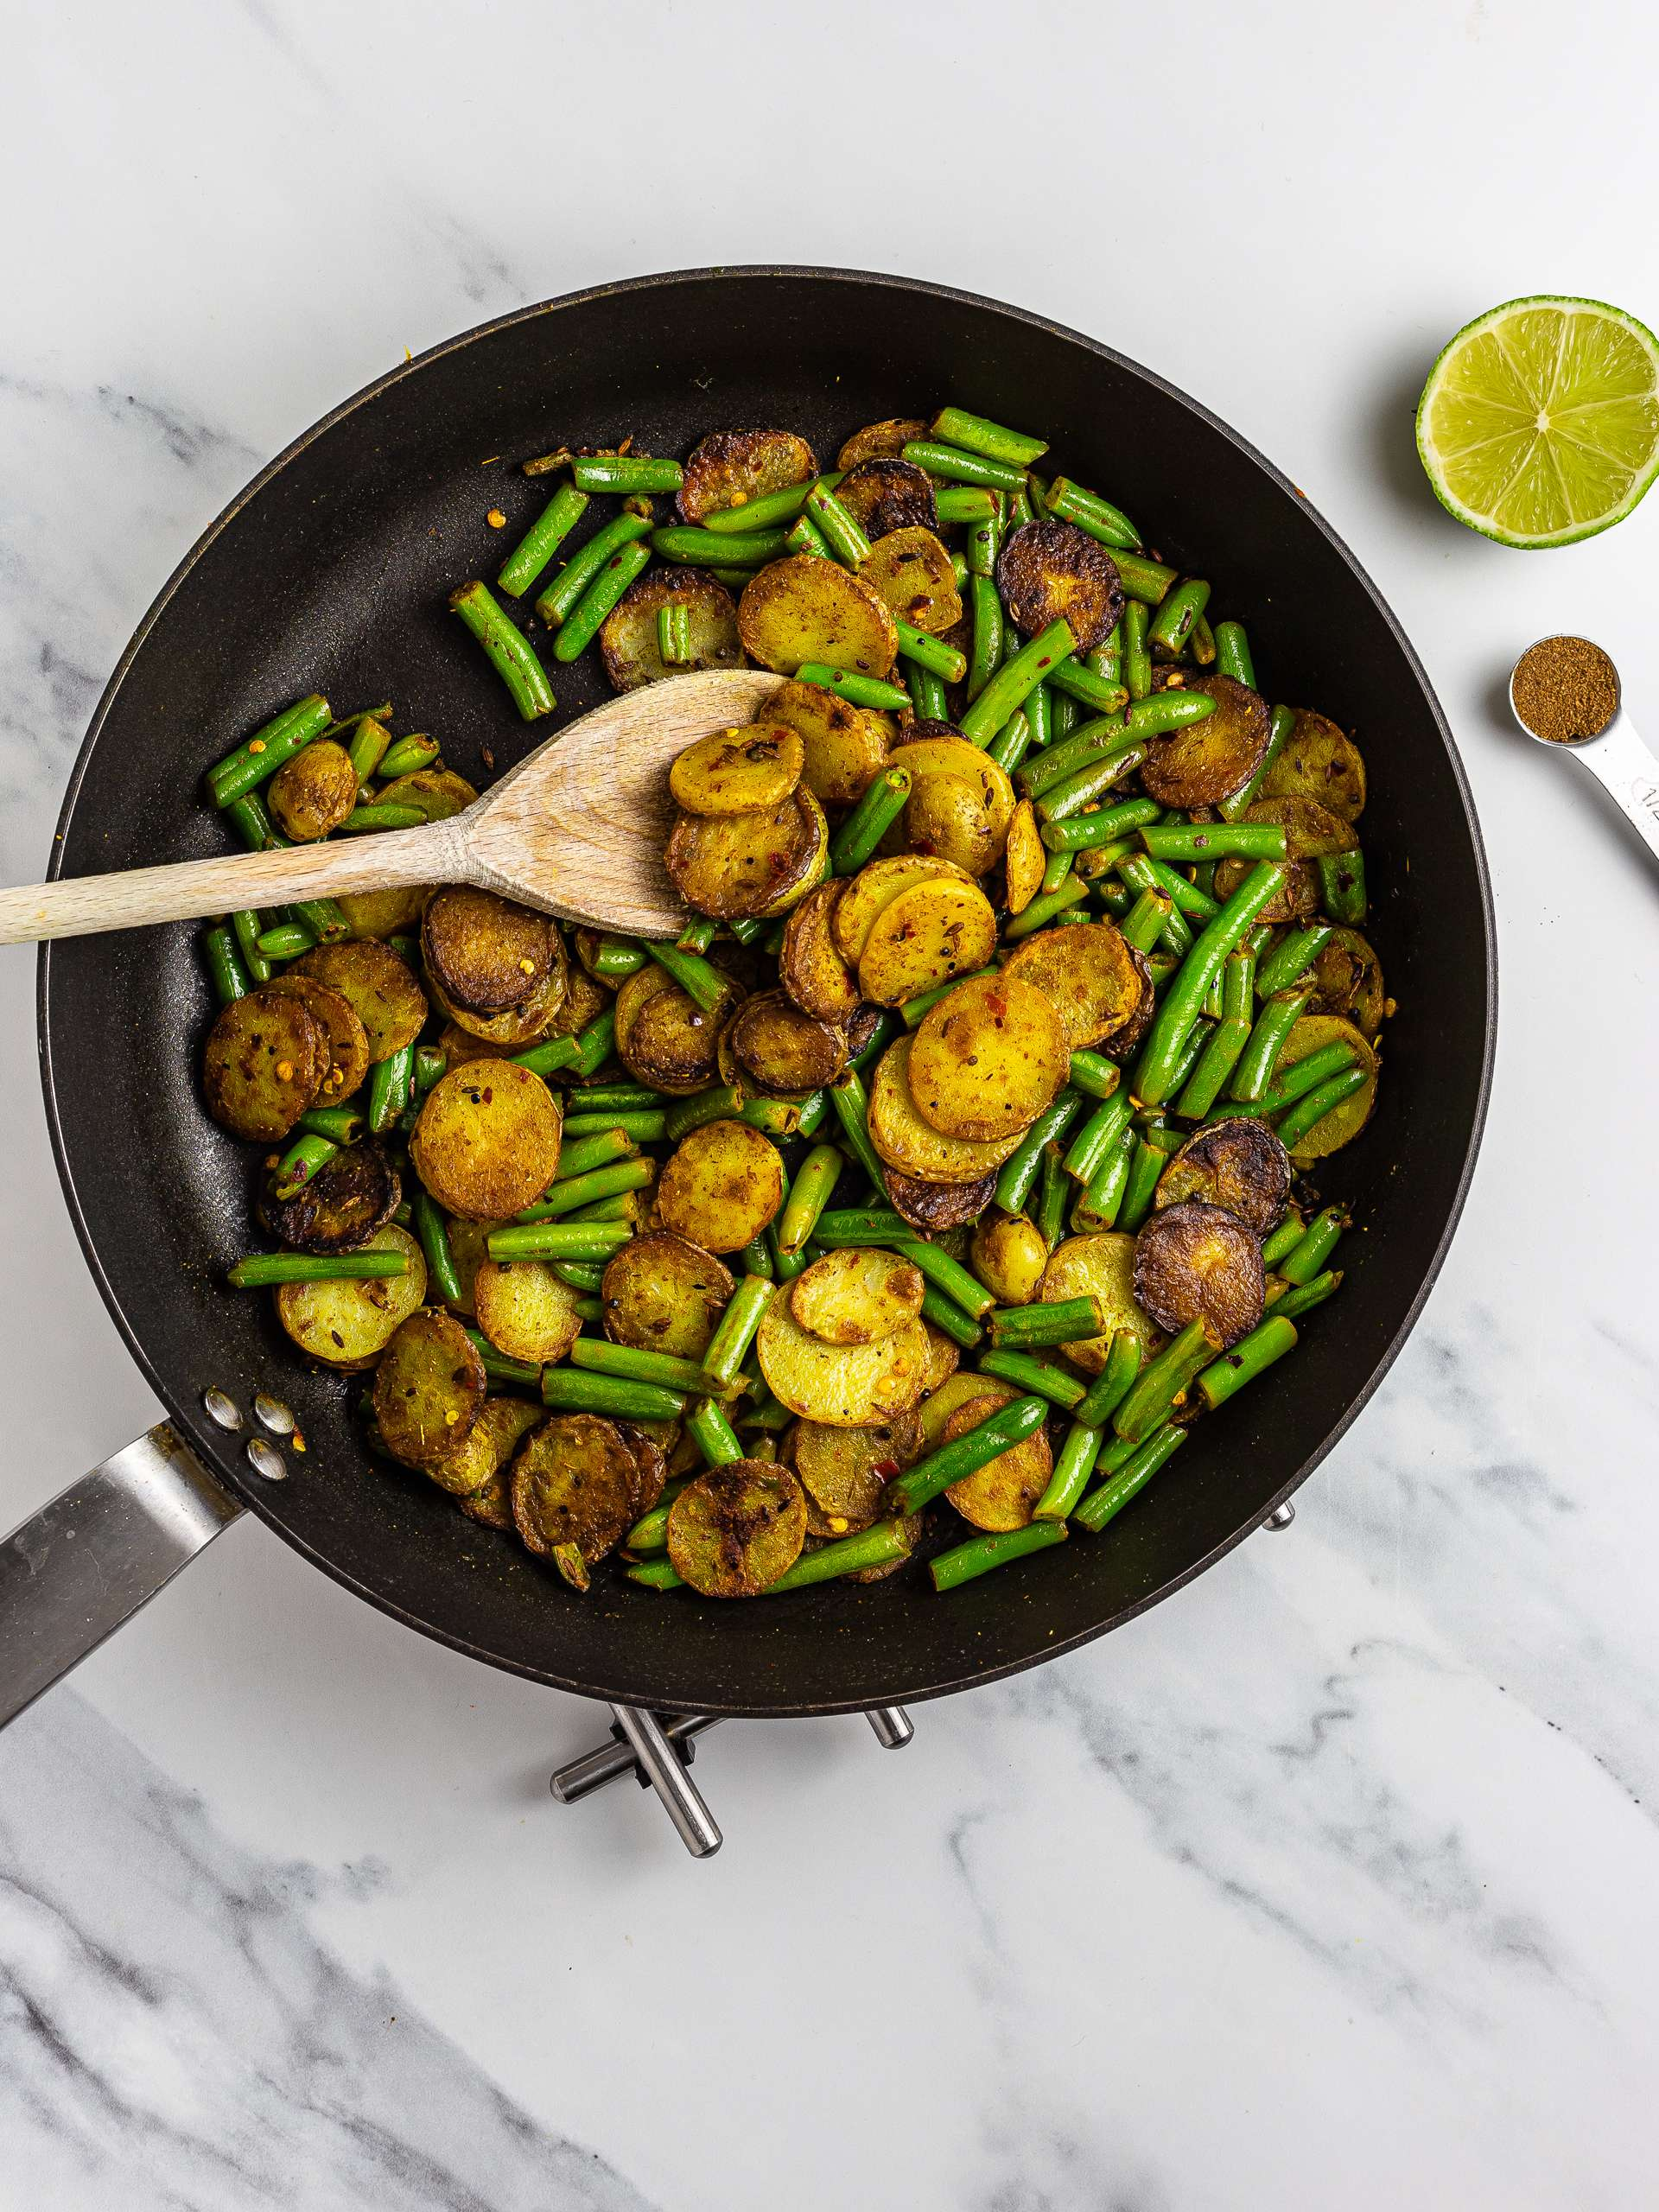 Aloo green beans Indian stir-fry with masala and lime